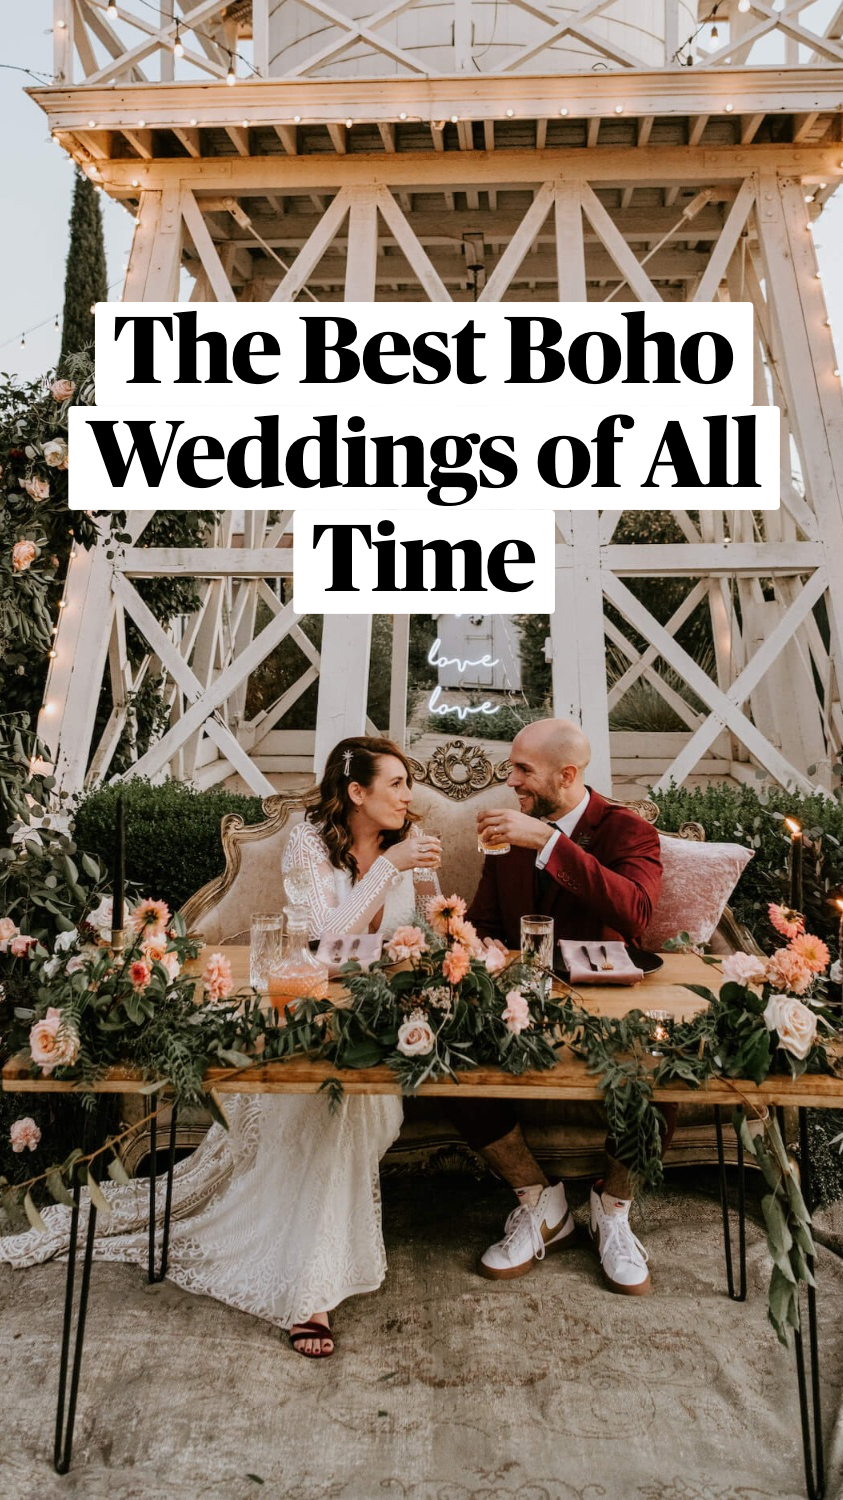 The Best Boho Weddings of All Time